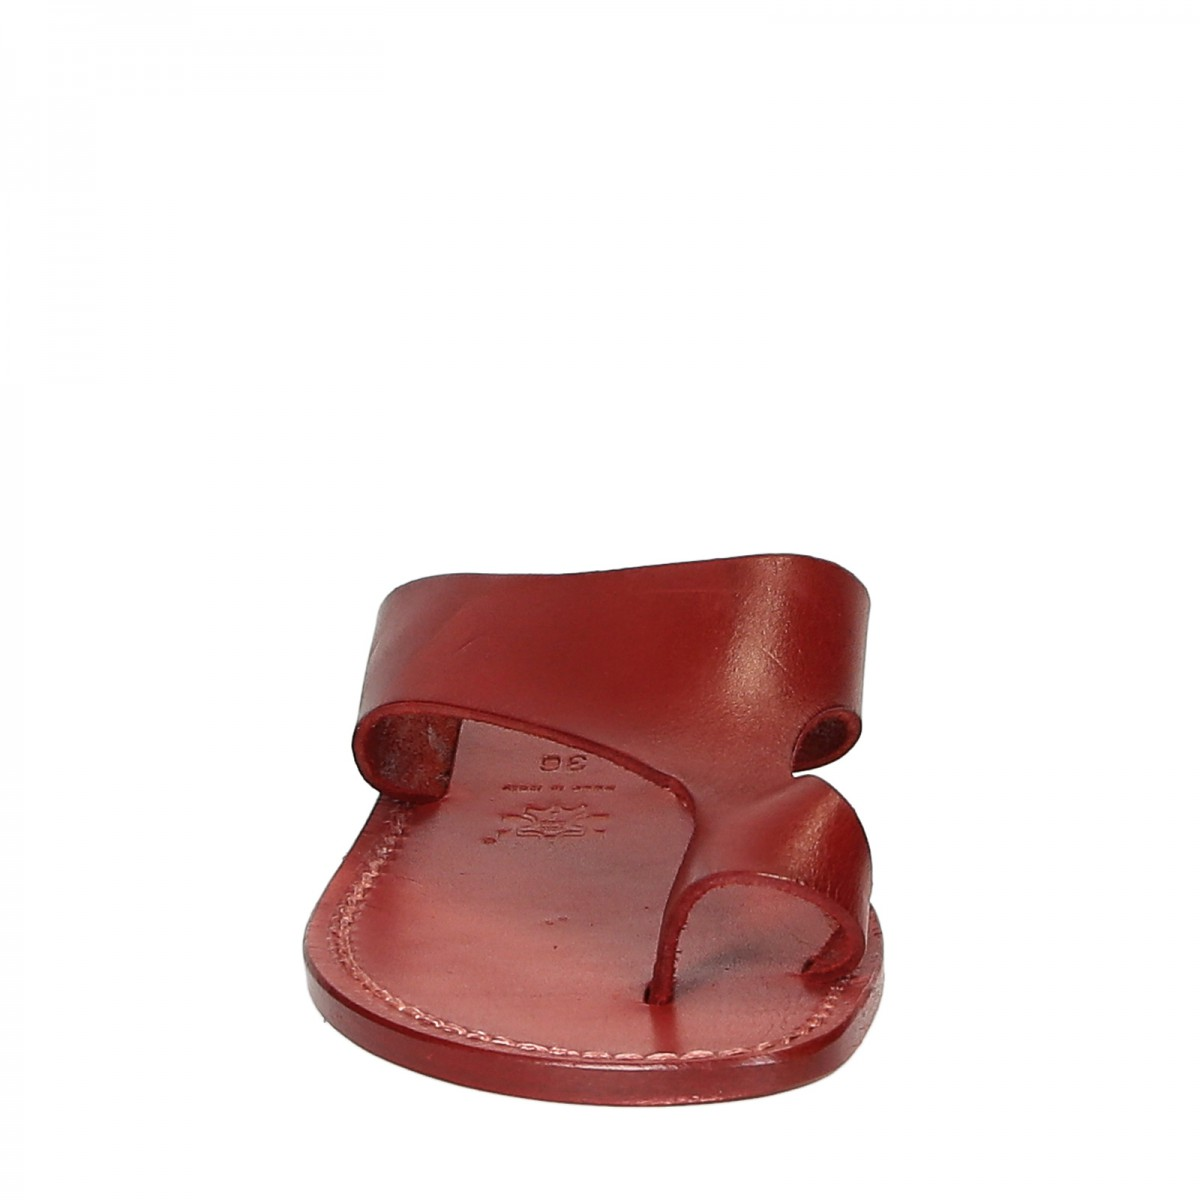 Red Leather Thong Sandals For Women Handmade Gianluca